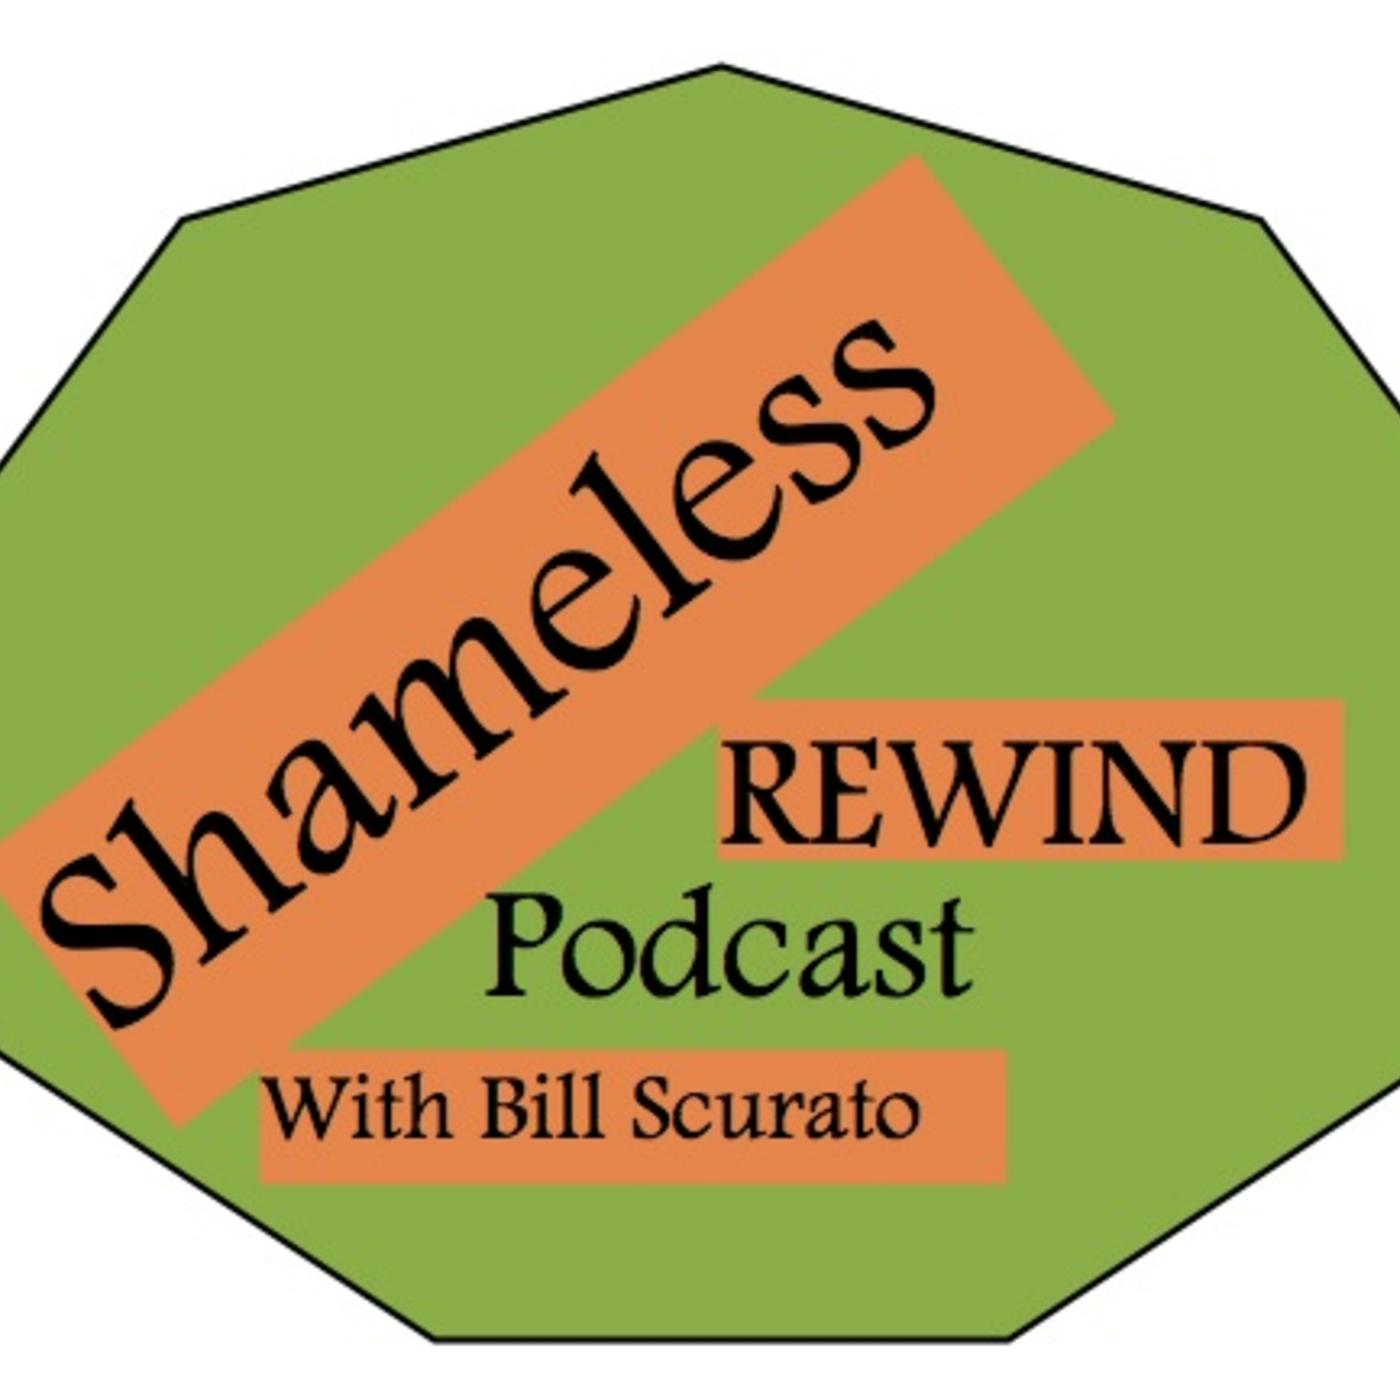 Shameless Rewind Podcast S5,E7